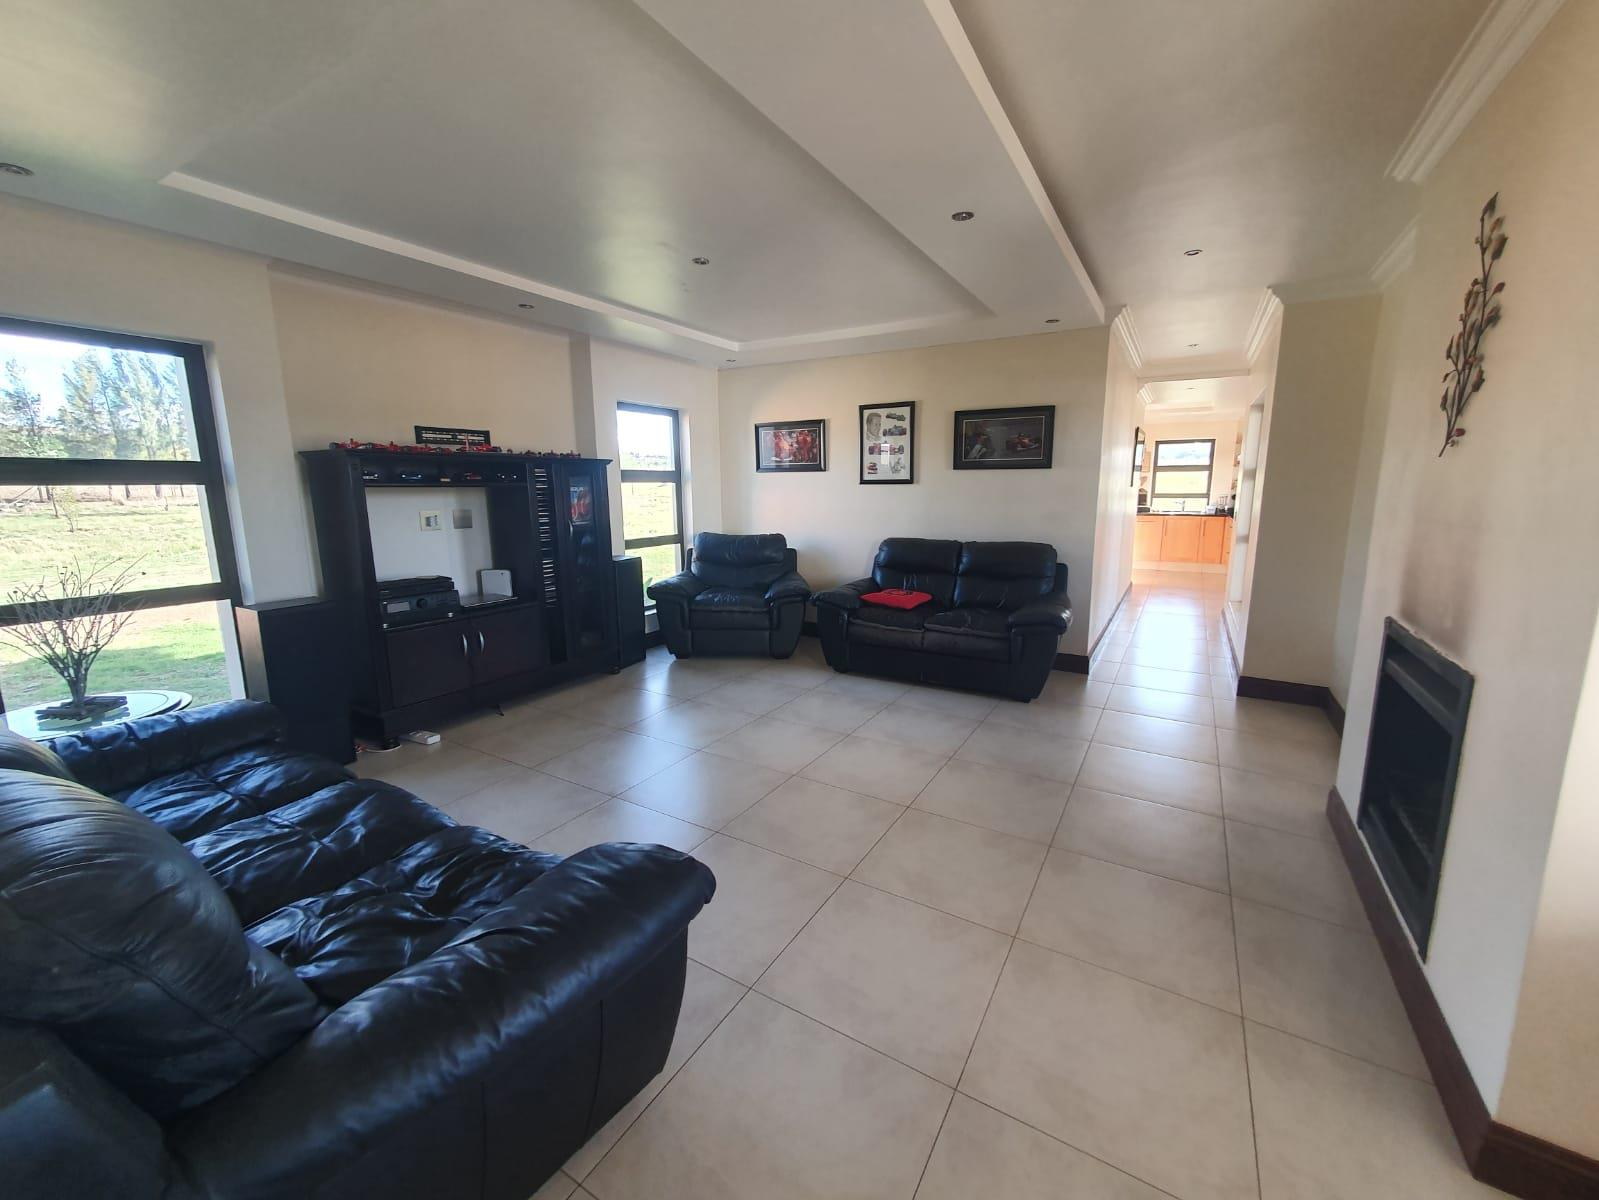 4 Bedroom House For Sale in Blue Saddle Ranches